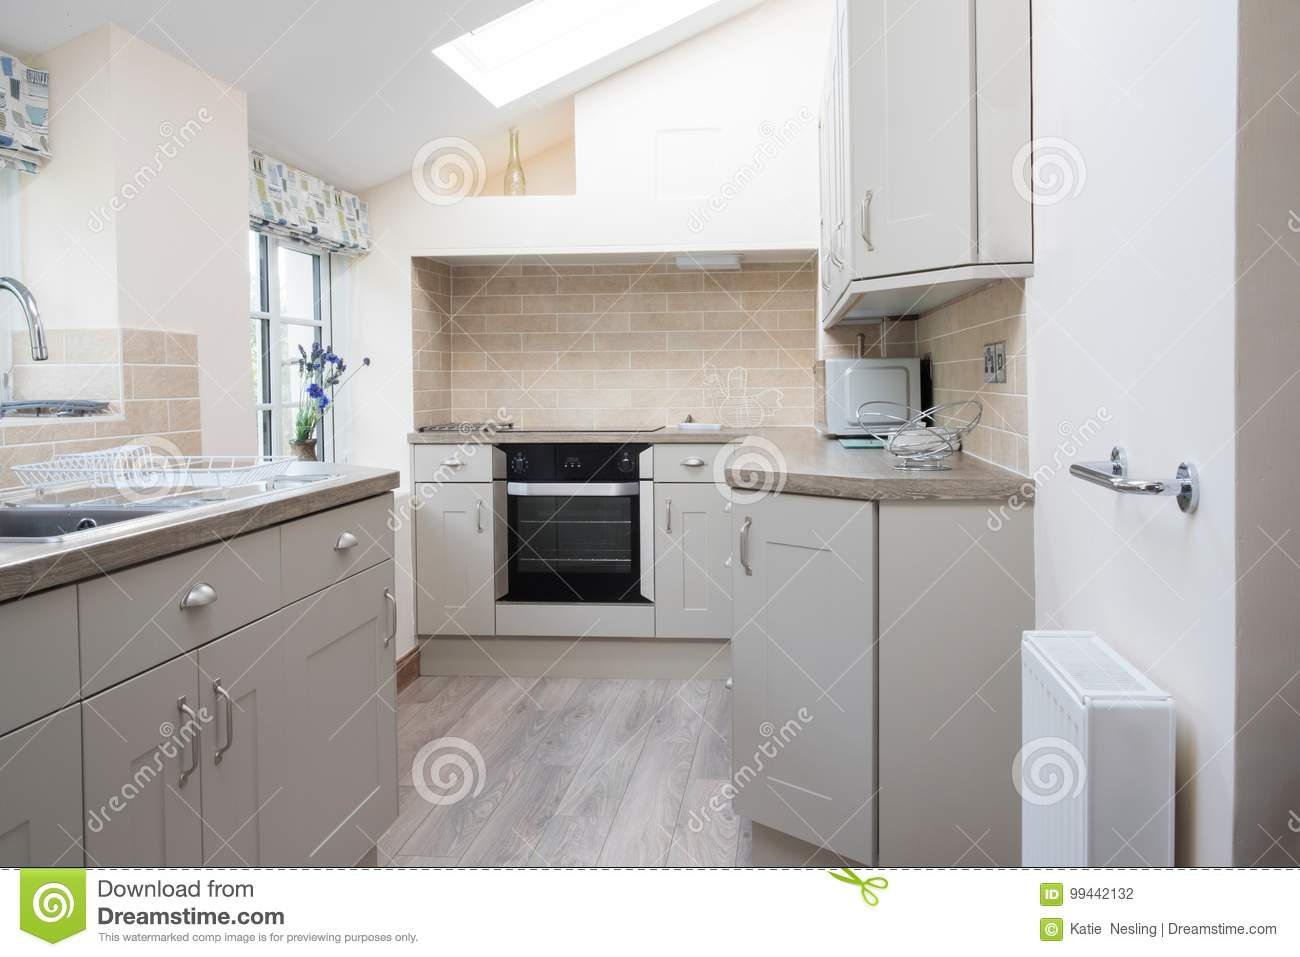 Empty Interior Of Modern Kitchen In Home Stock Photo - Image of